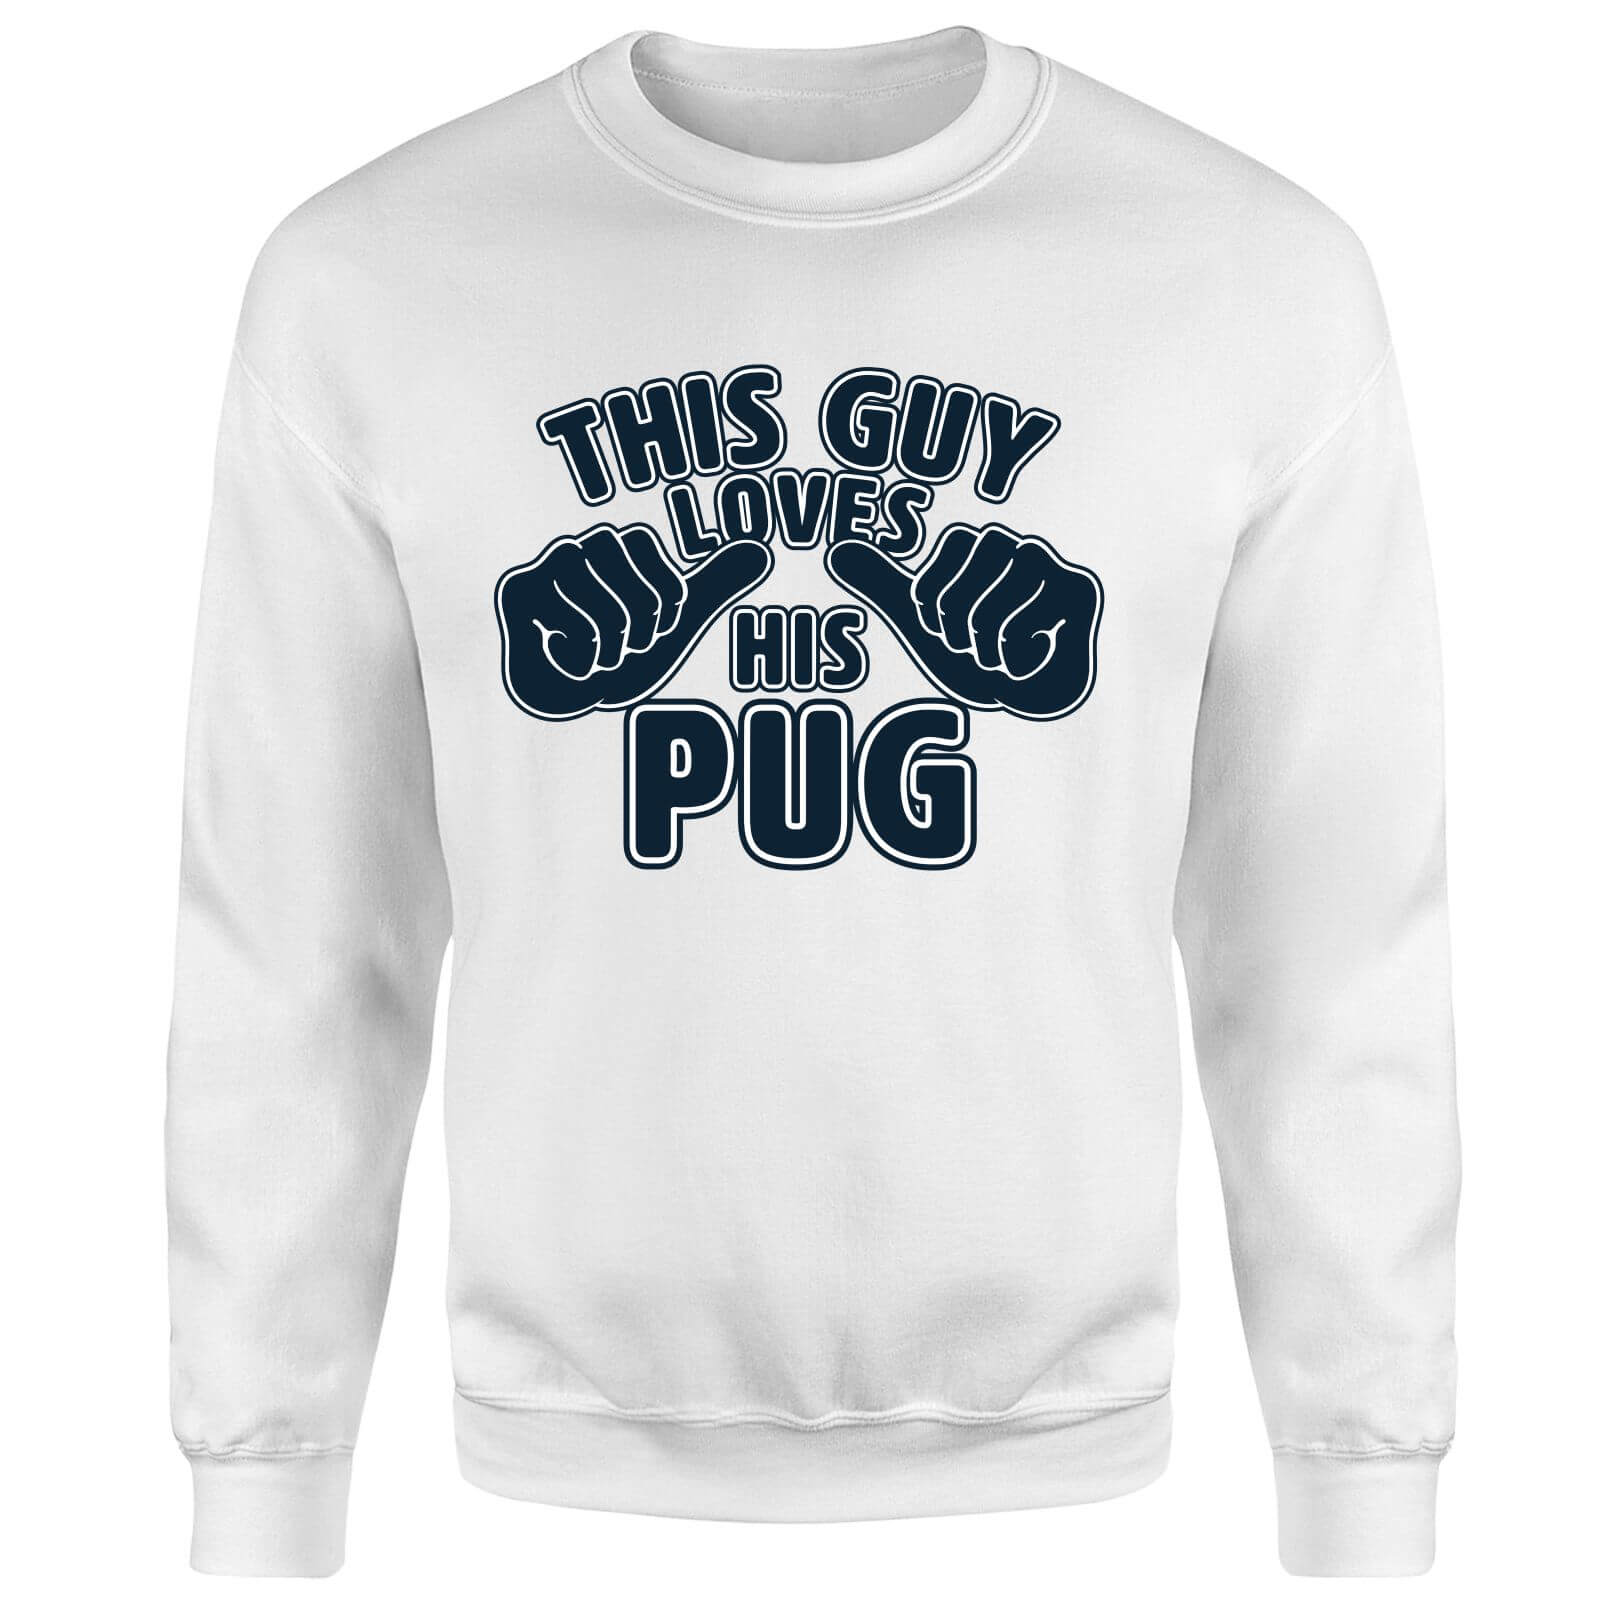 This Guy Loves His Pug Sweatshirt - White